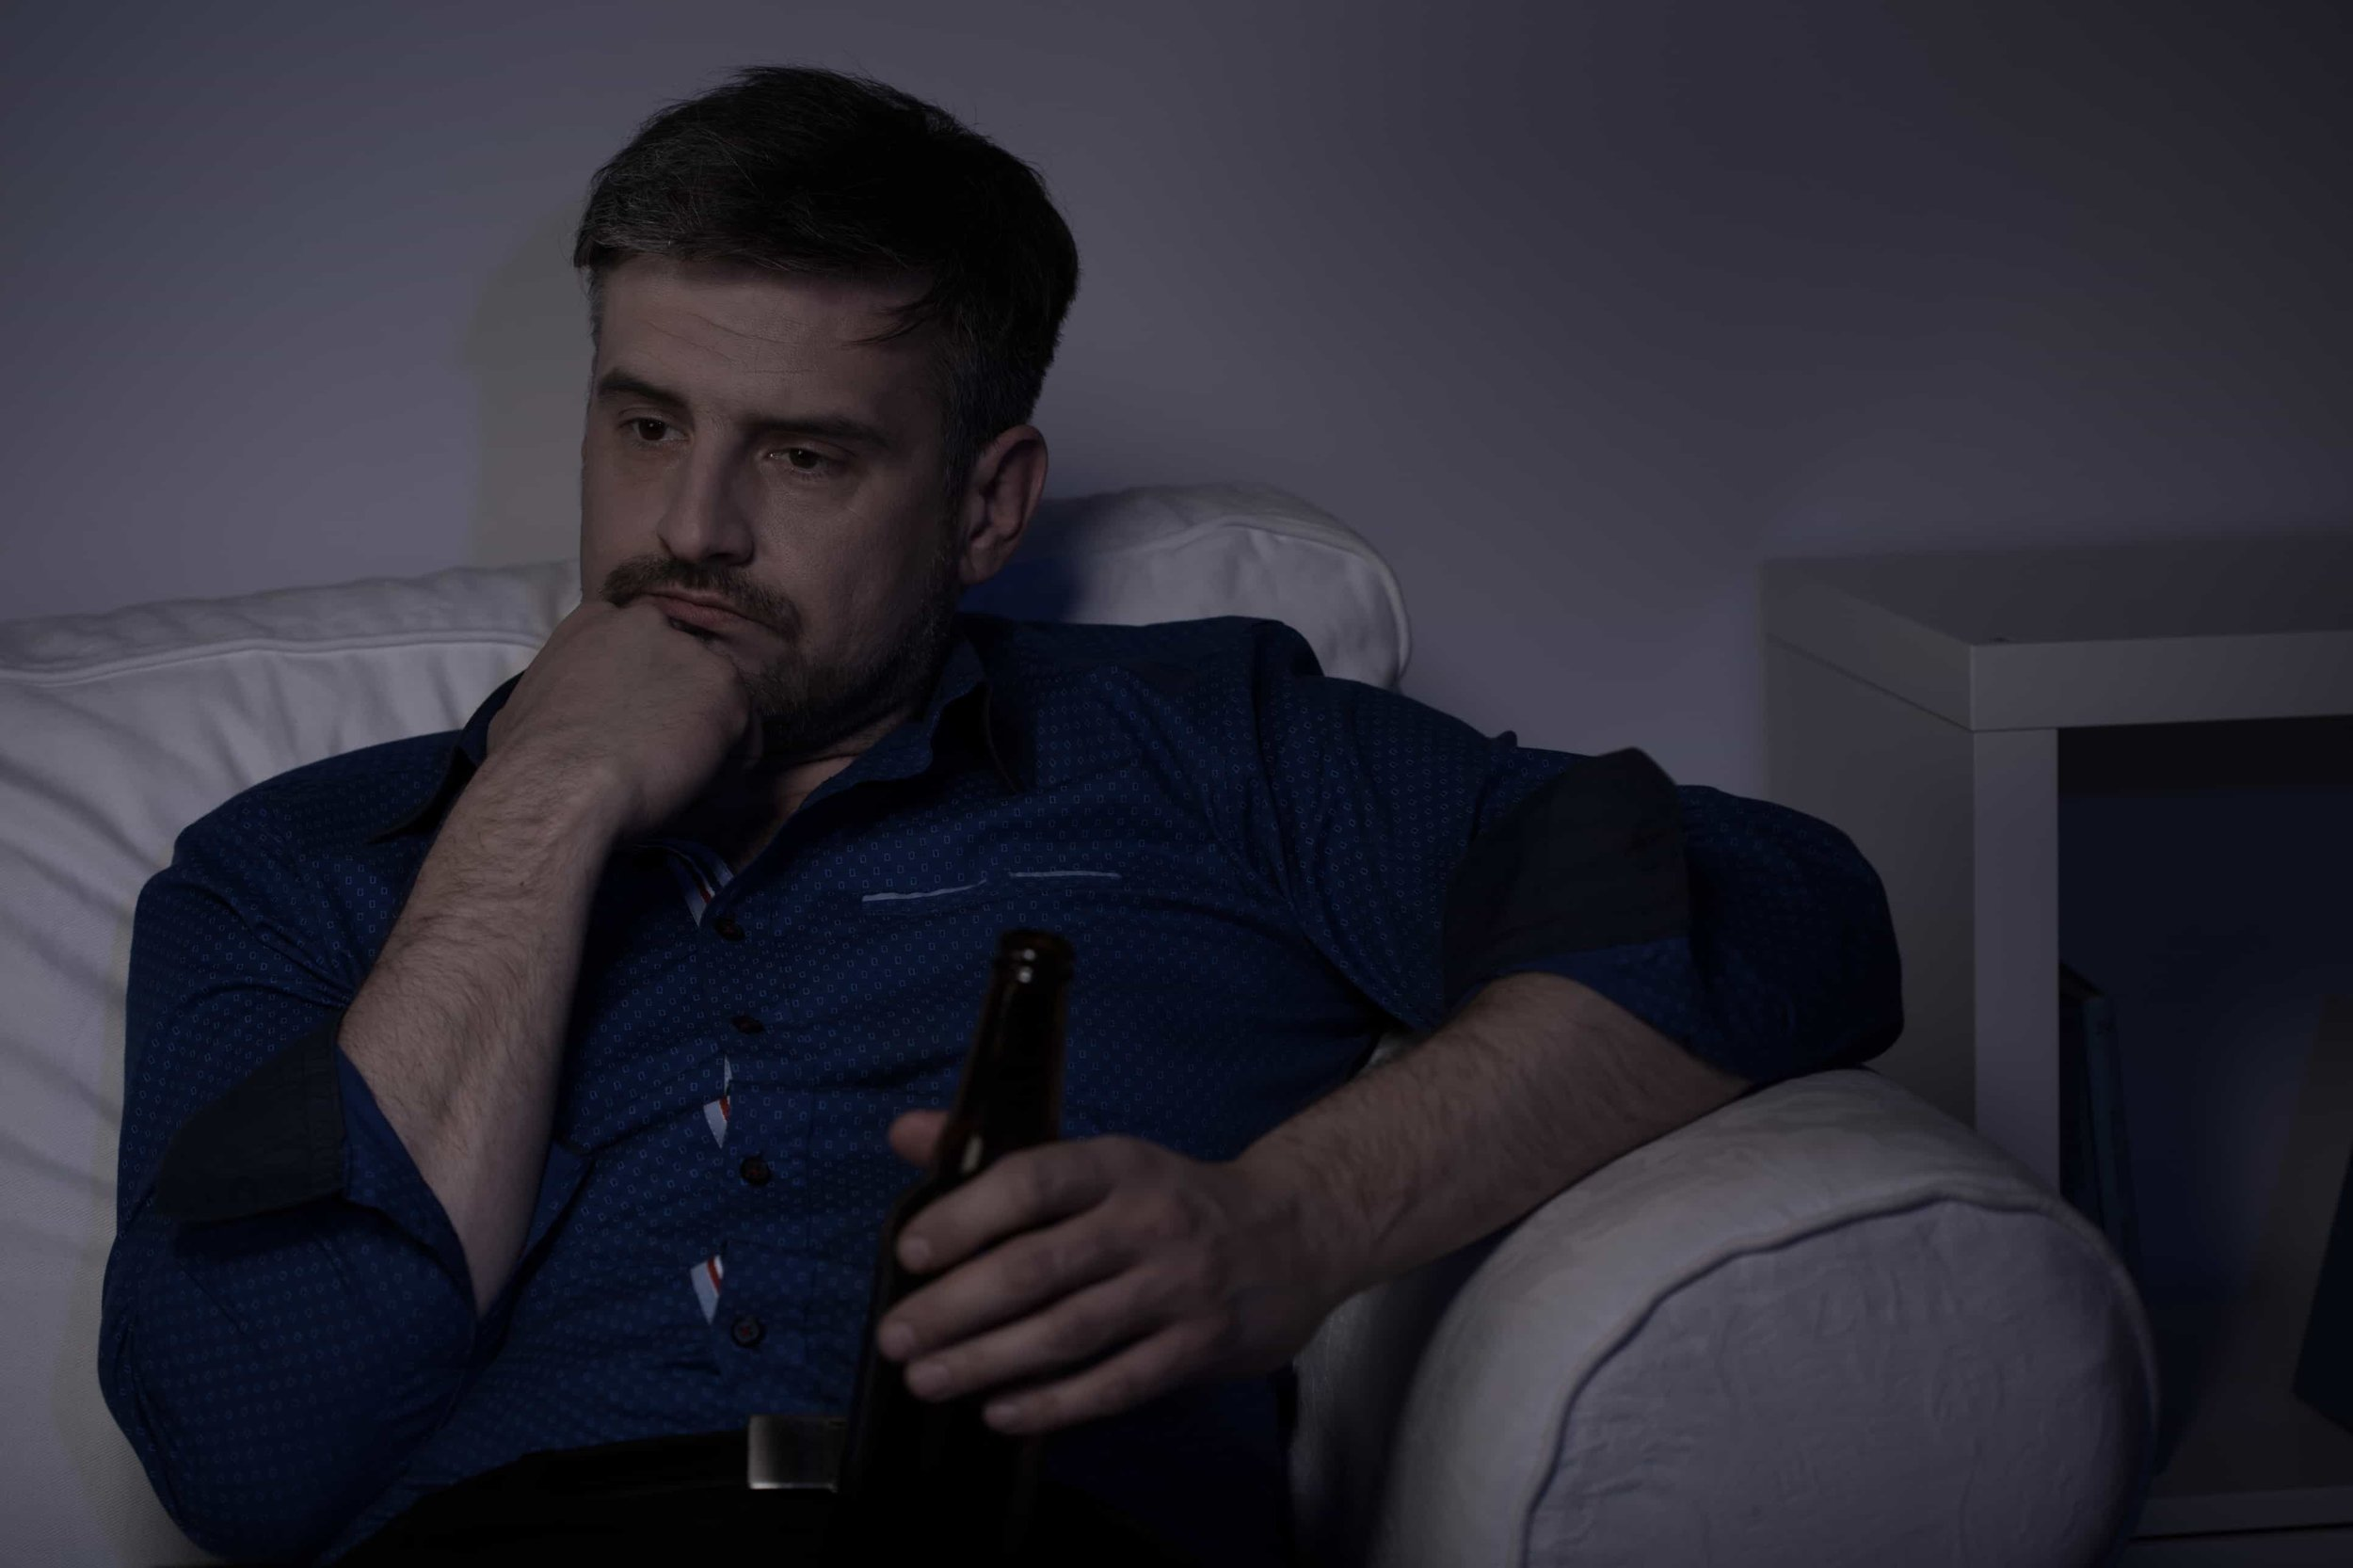 man with alcohol addiction drinking beer